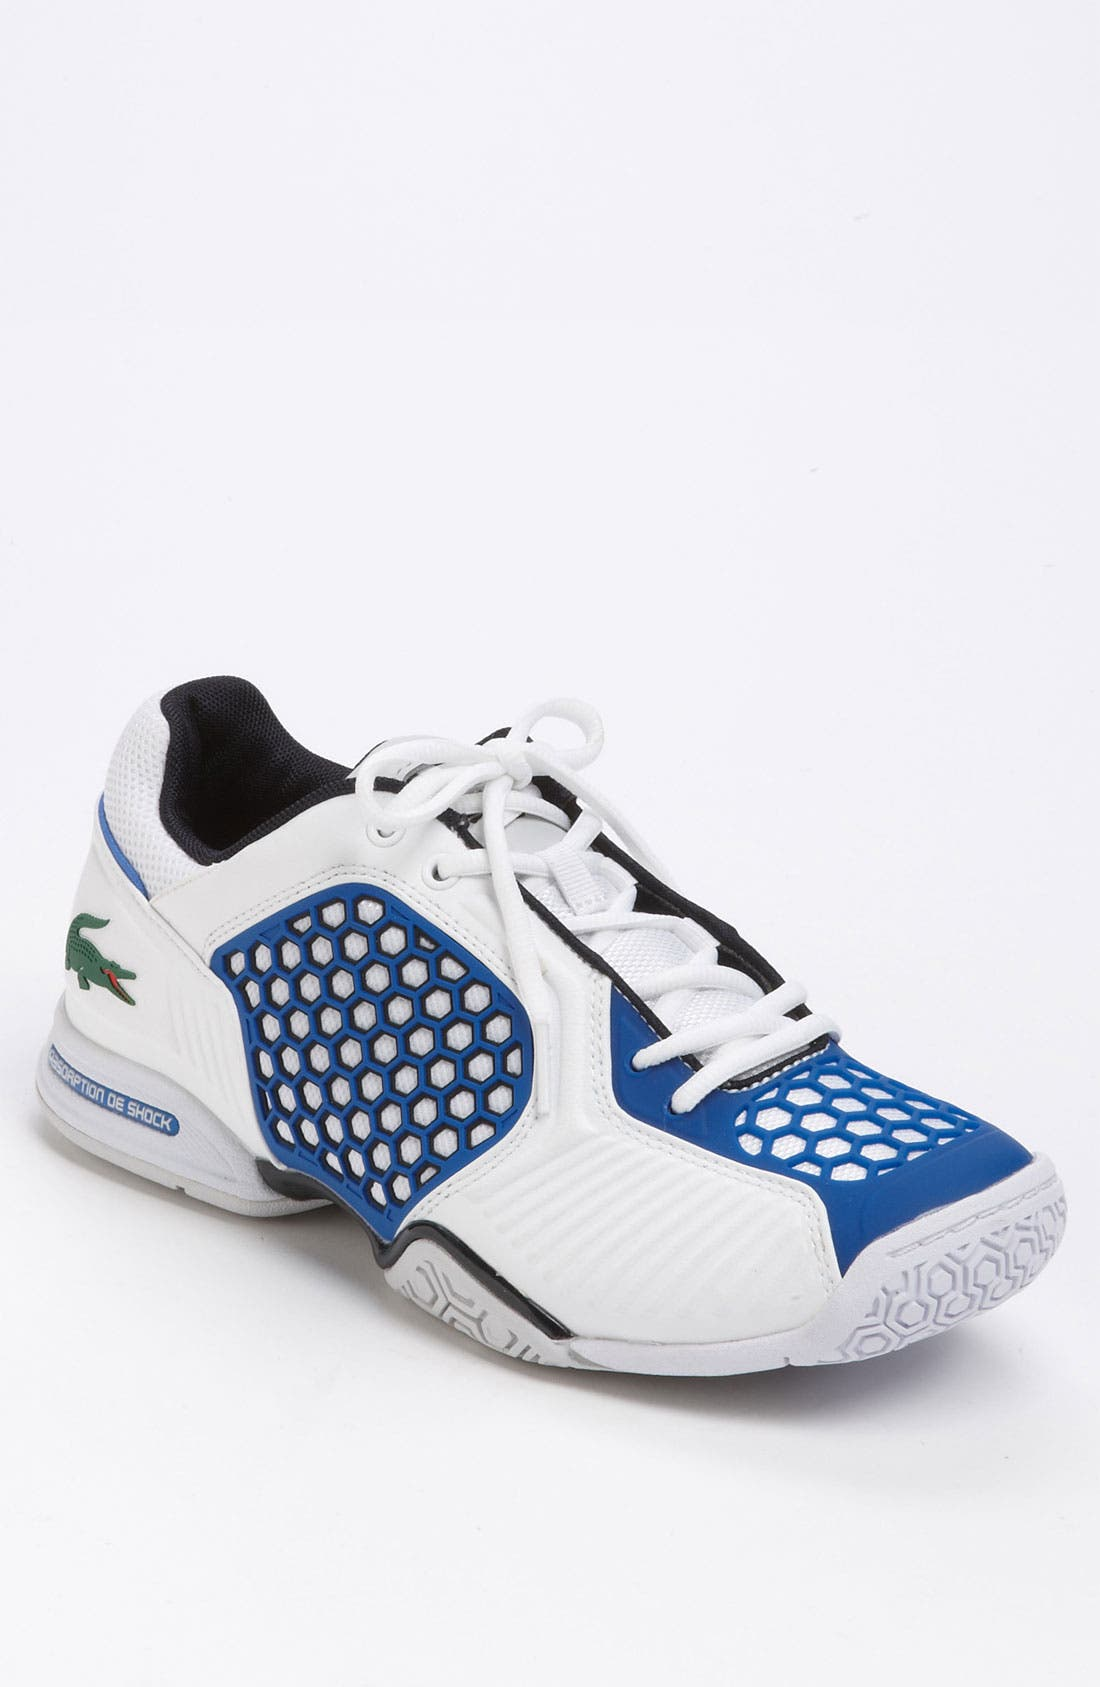 Main Image - Lacoste 'Repel 2' Tennis Shoe (Men)